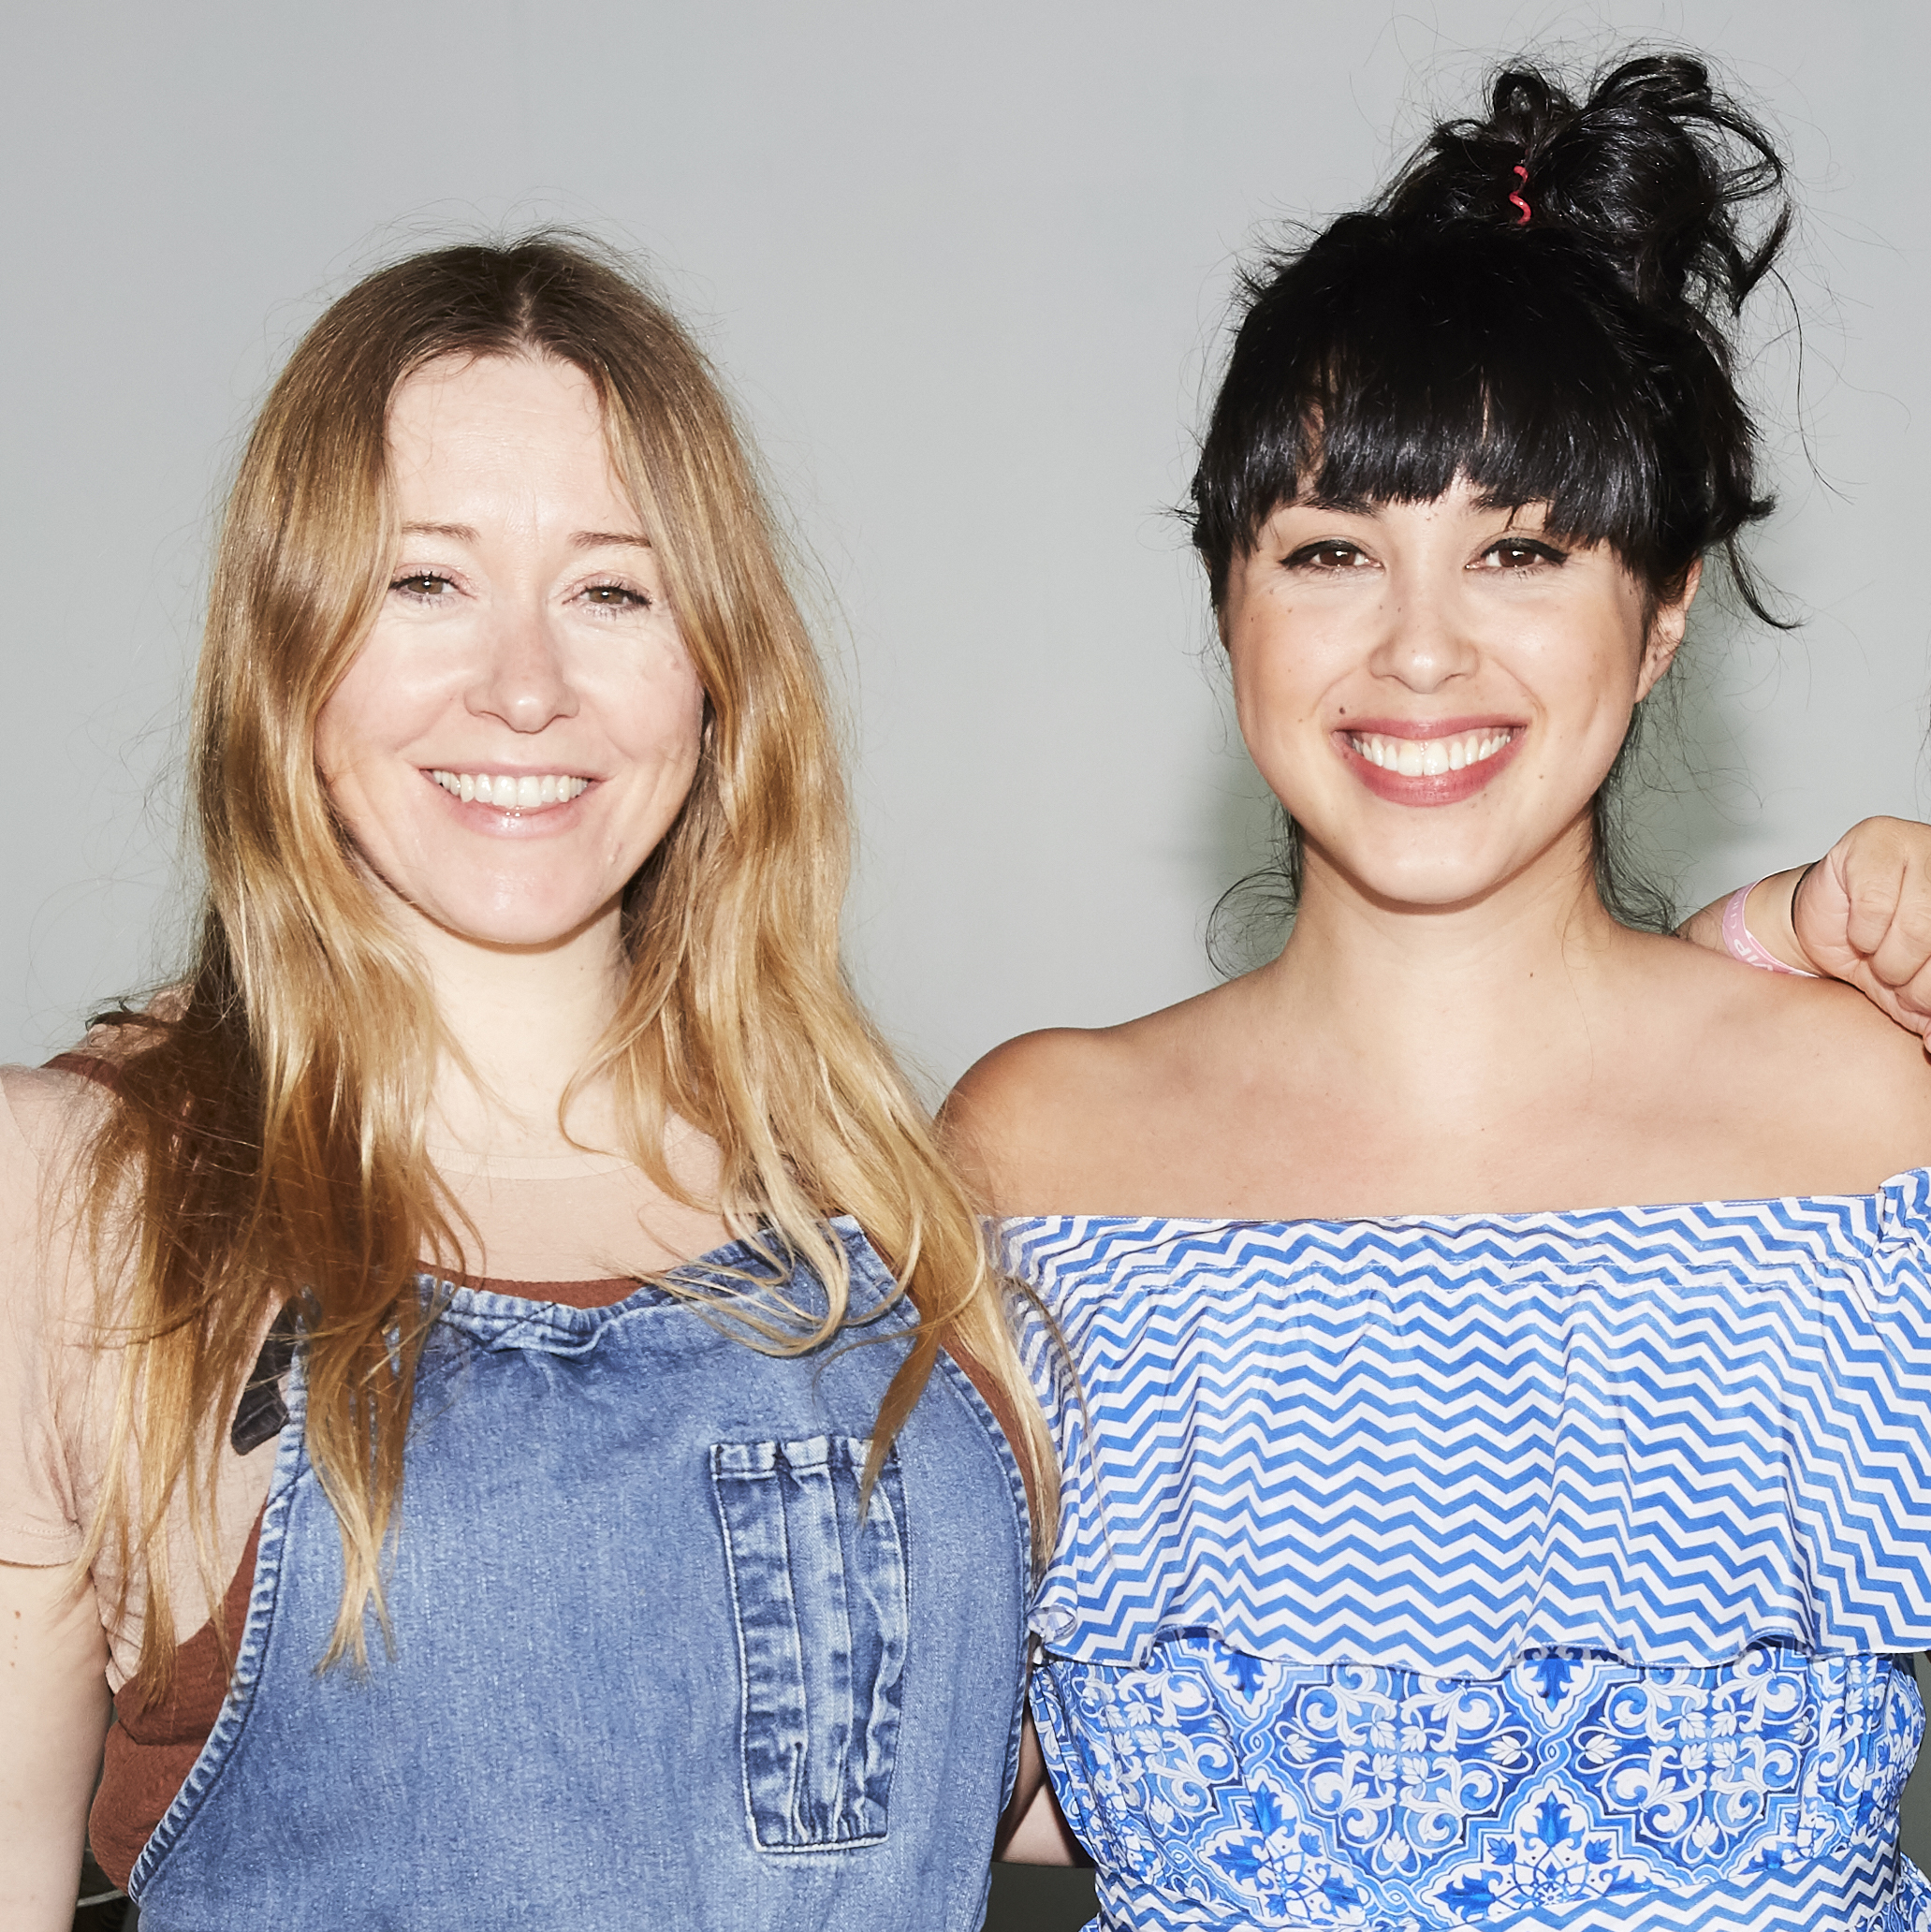 Anna Jones (left) and Melissa Hemsley (right)